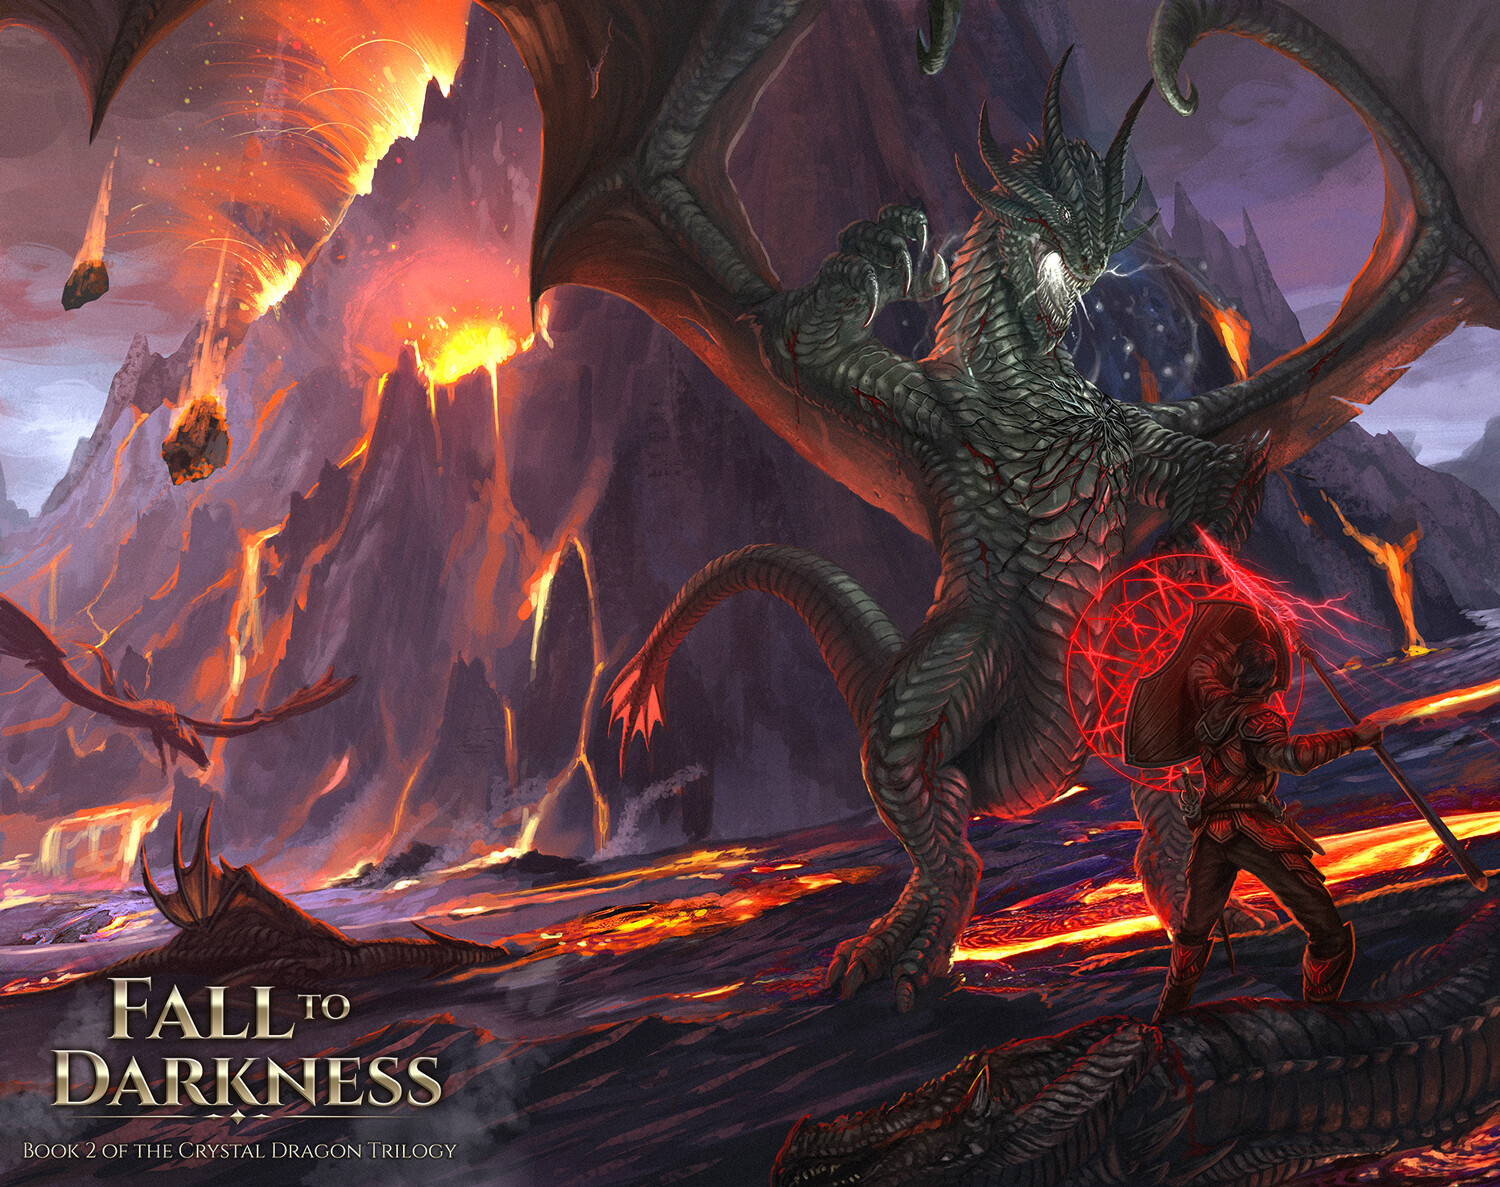 Robert crescenzio fall to darkness book 2 web